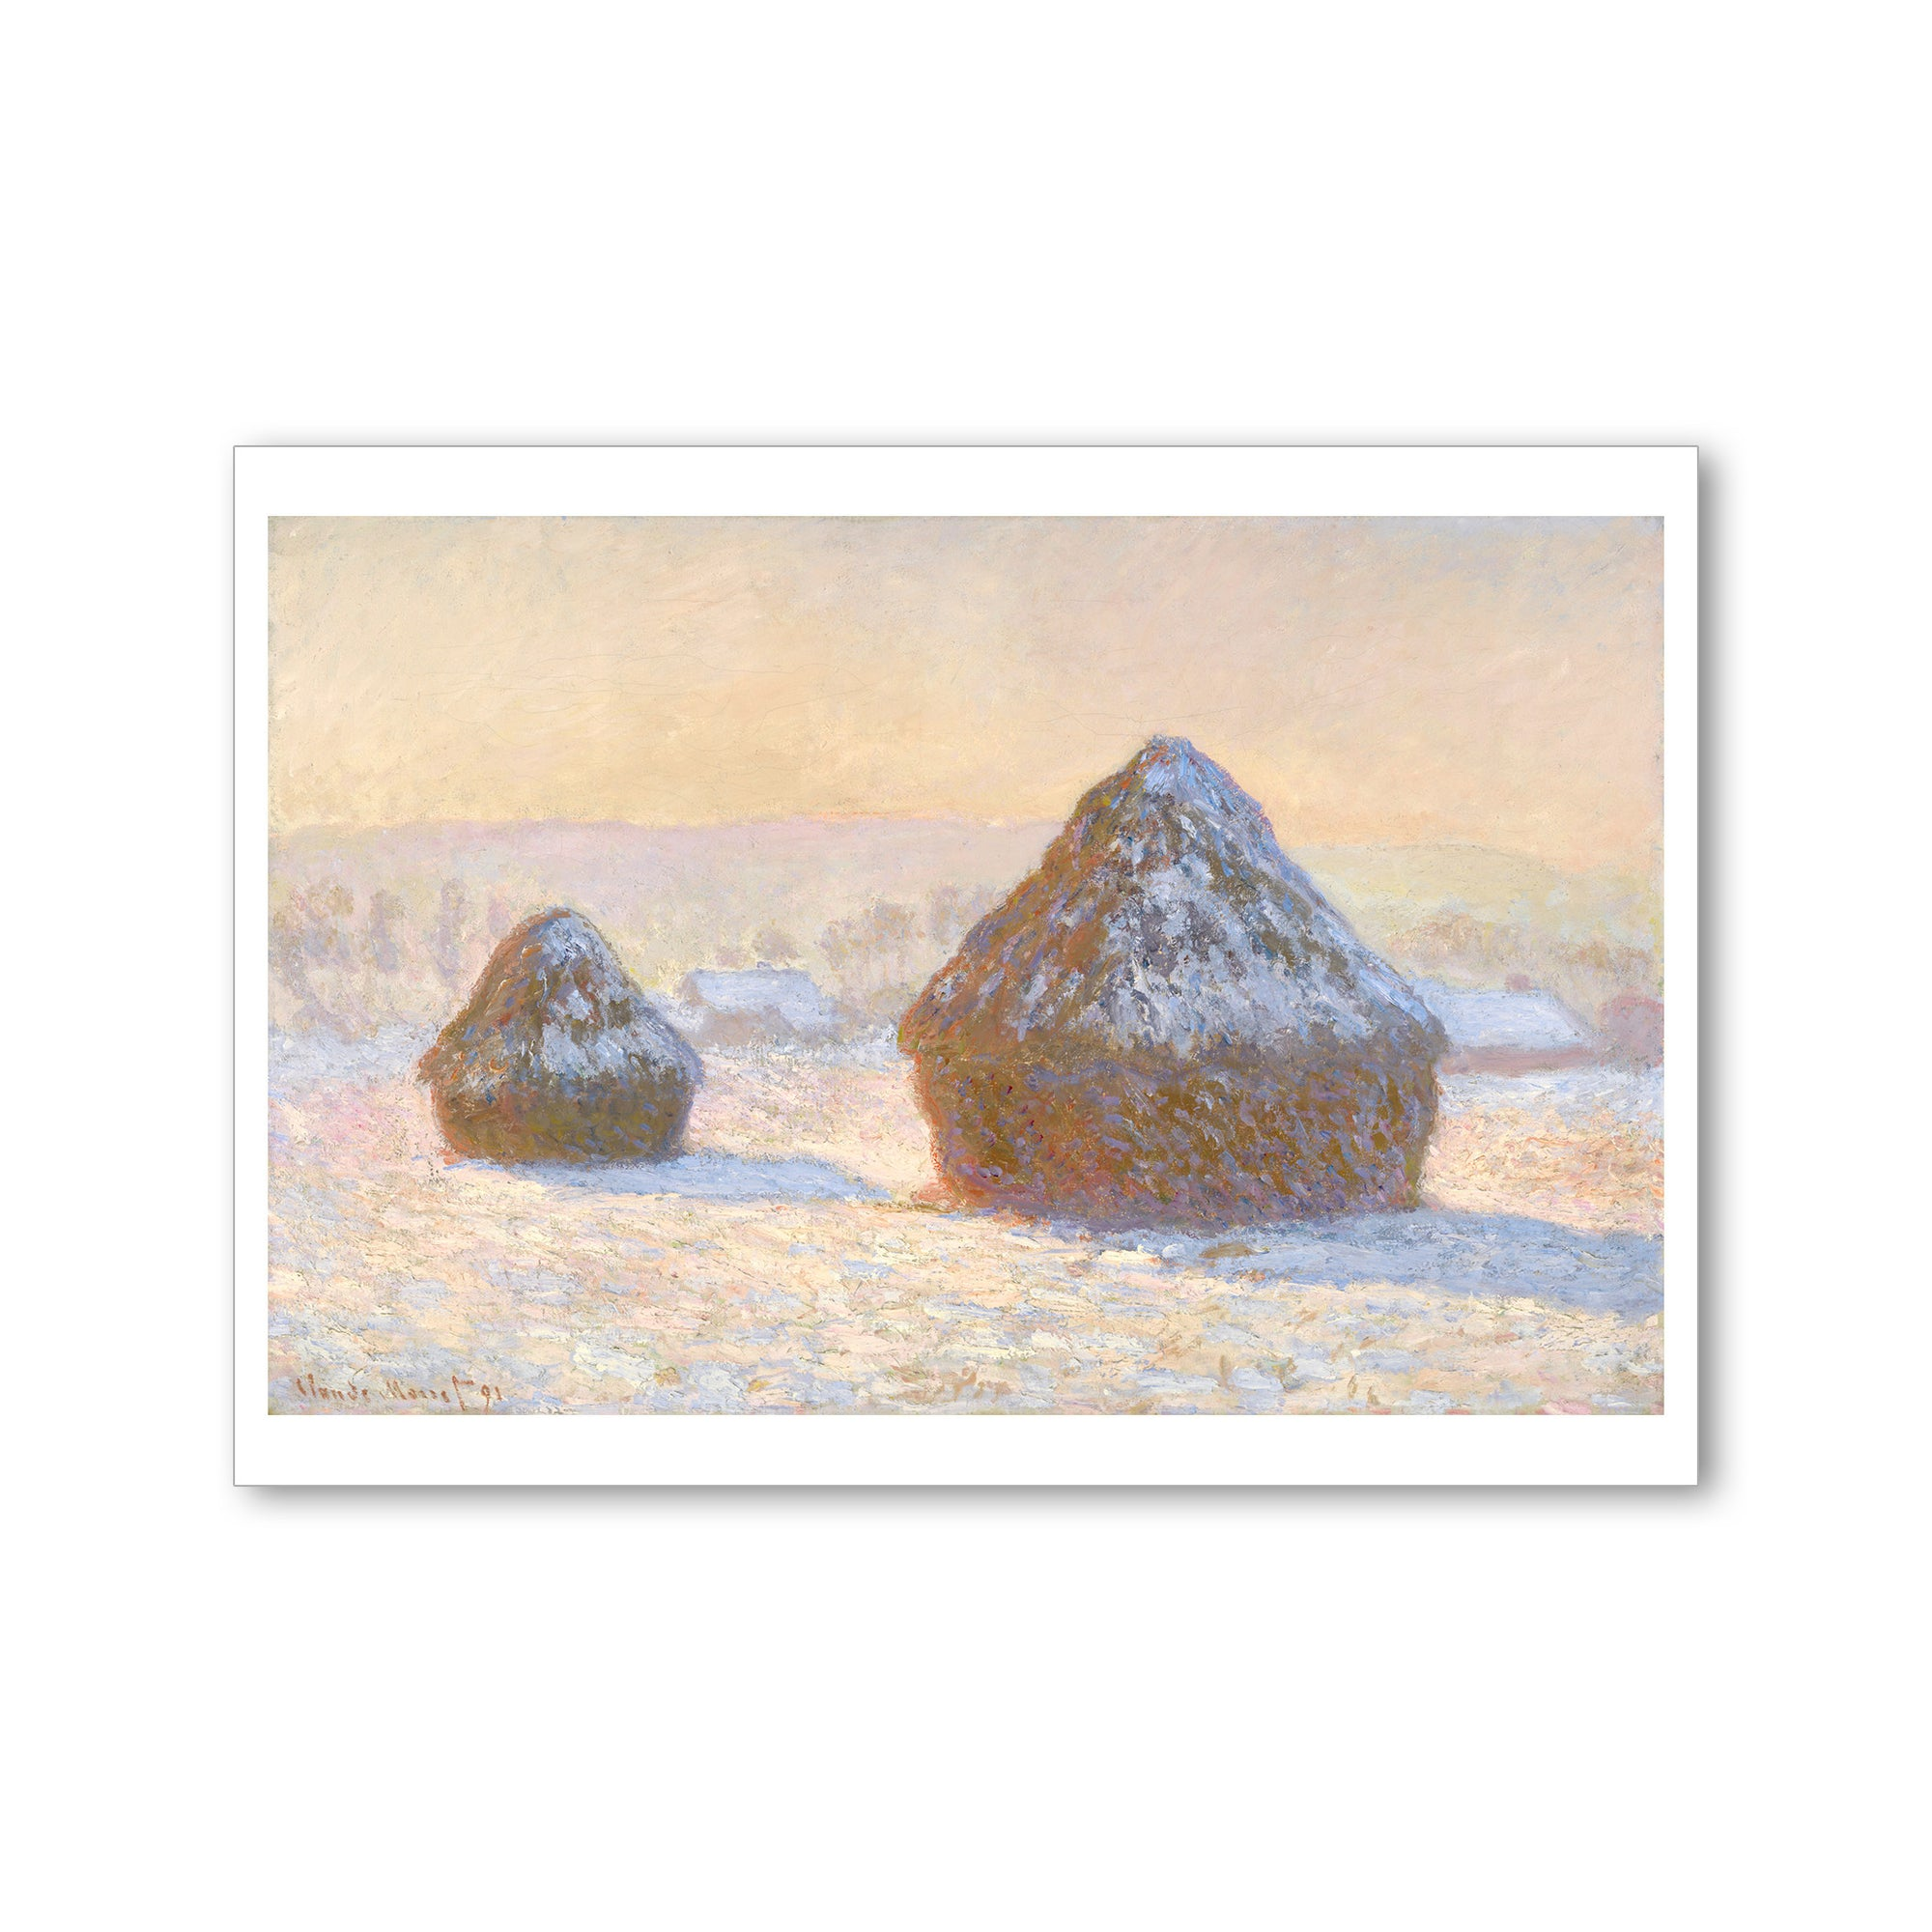 Monet- Wheatstacks, Snow Effect, Morning- Postcard | Getty Store